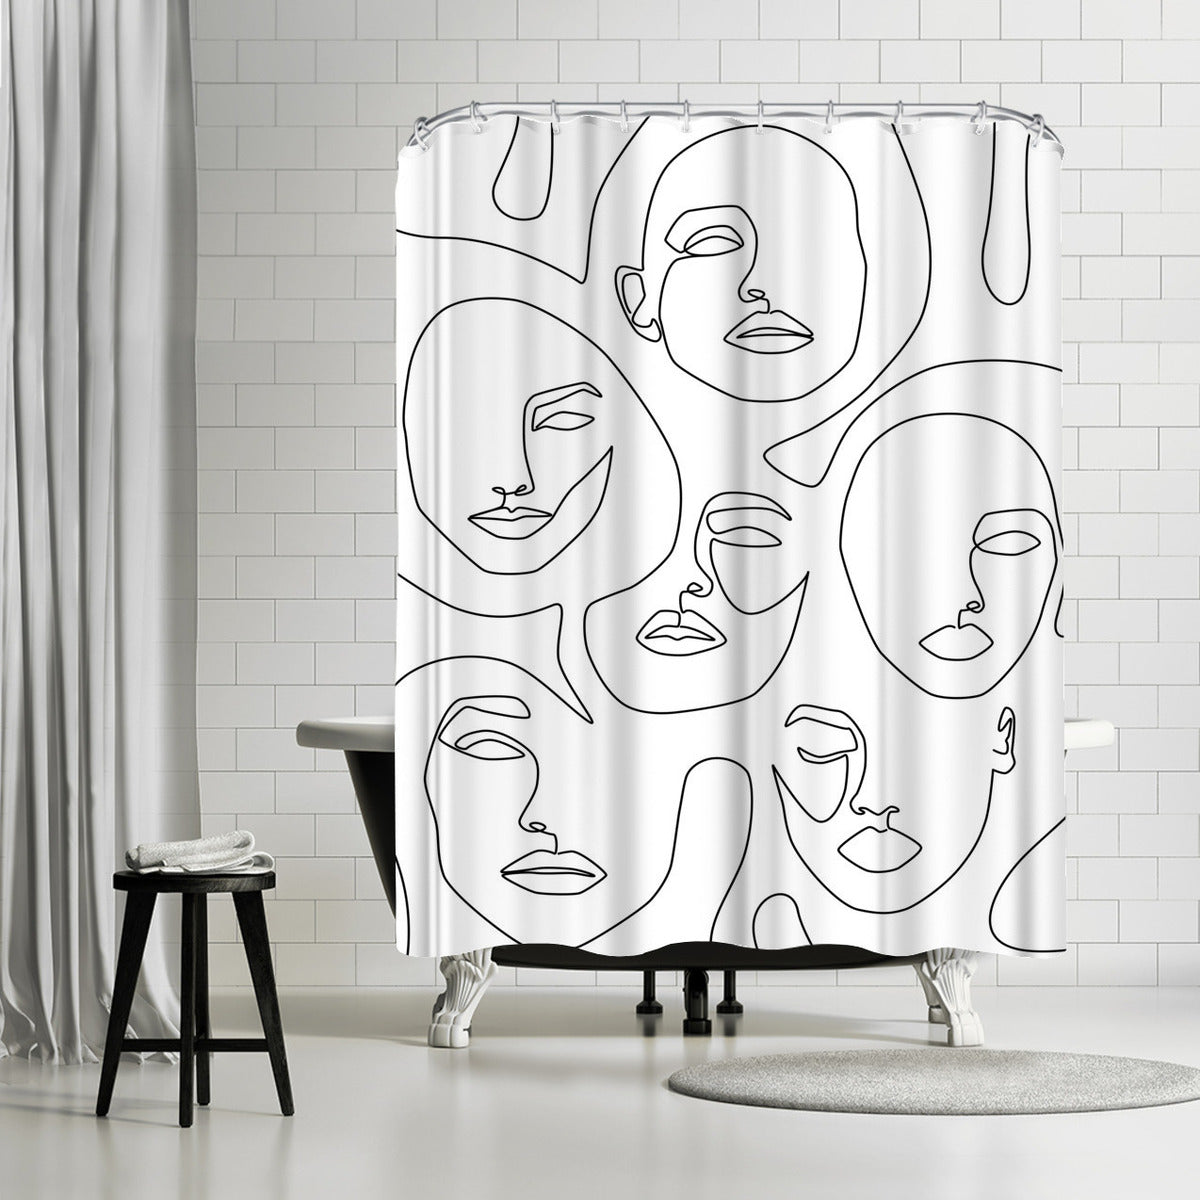 Her And Her by Explicit Design Shower Curtain - Shower Curtain - Americanflat